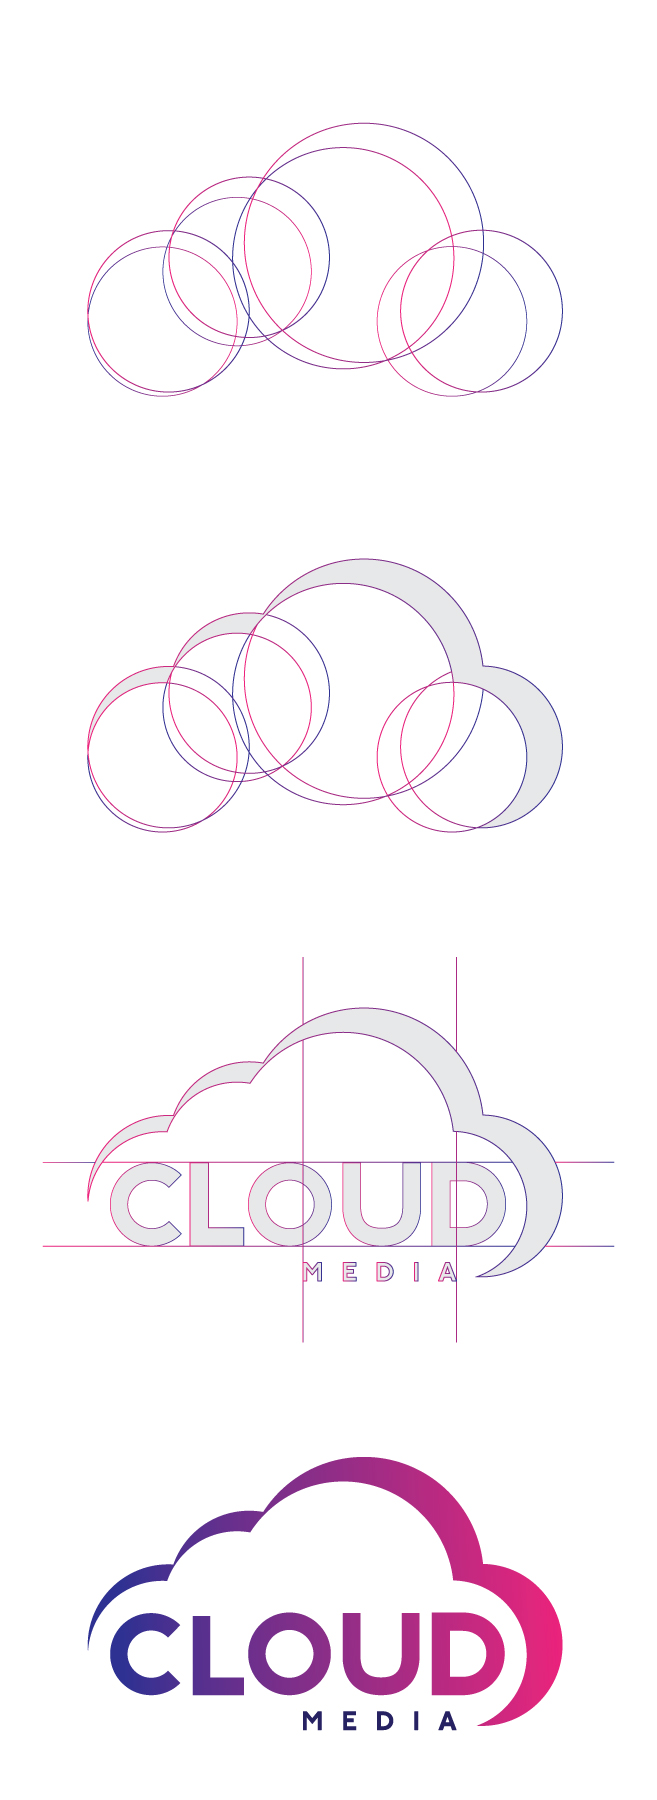 cloud_media_logo